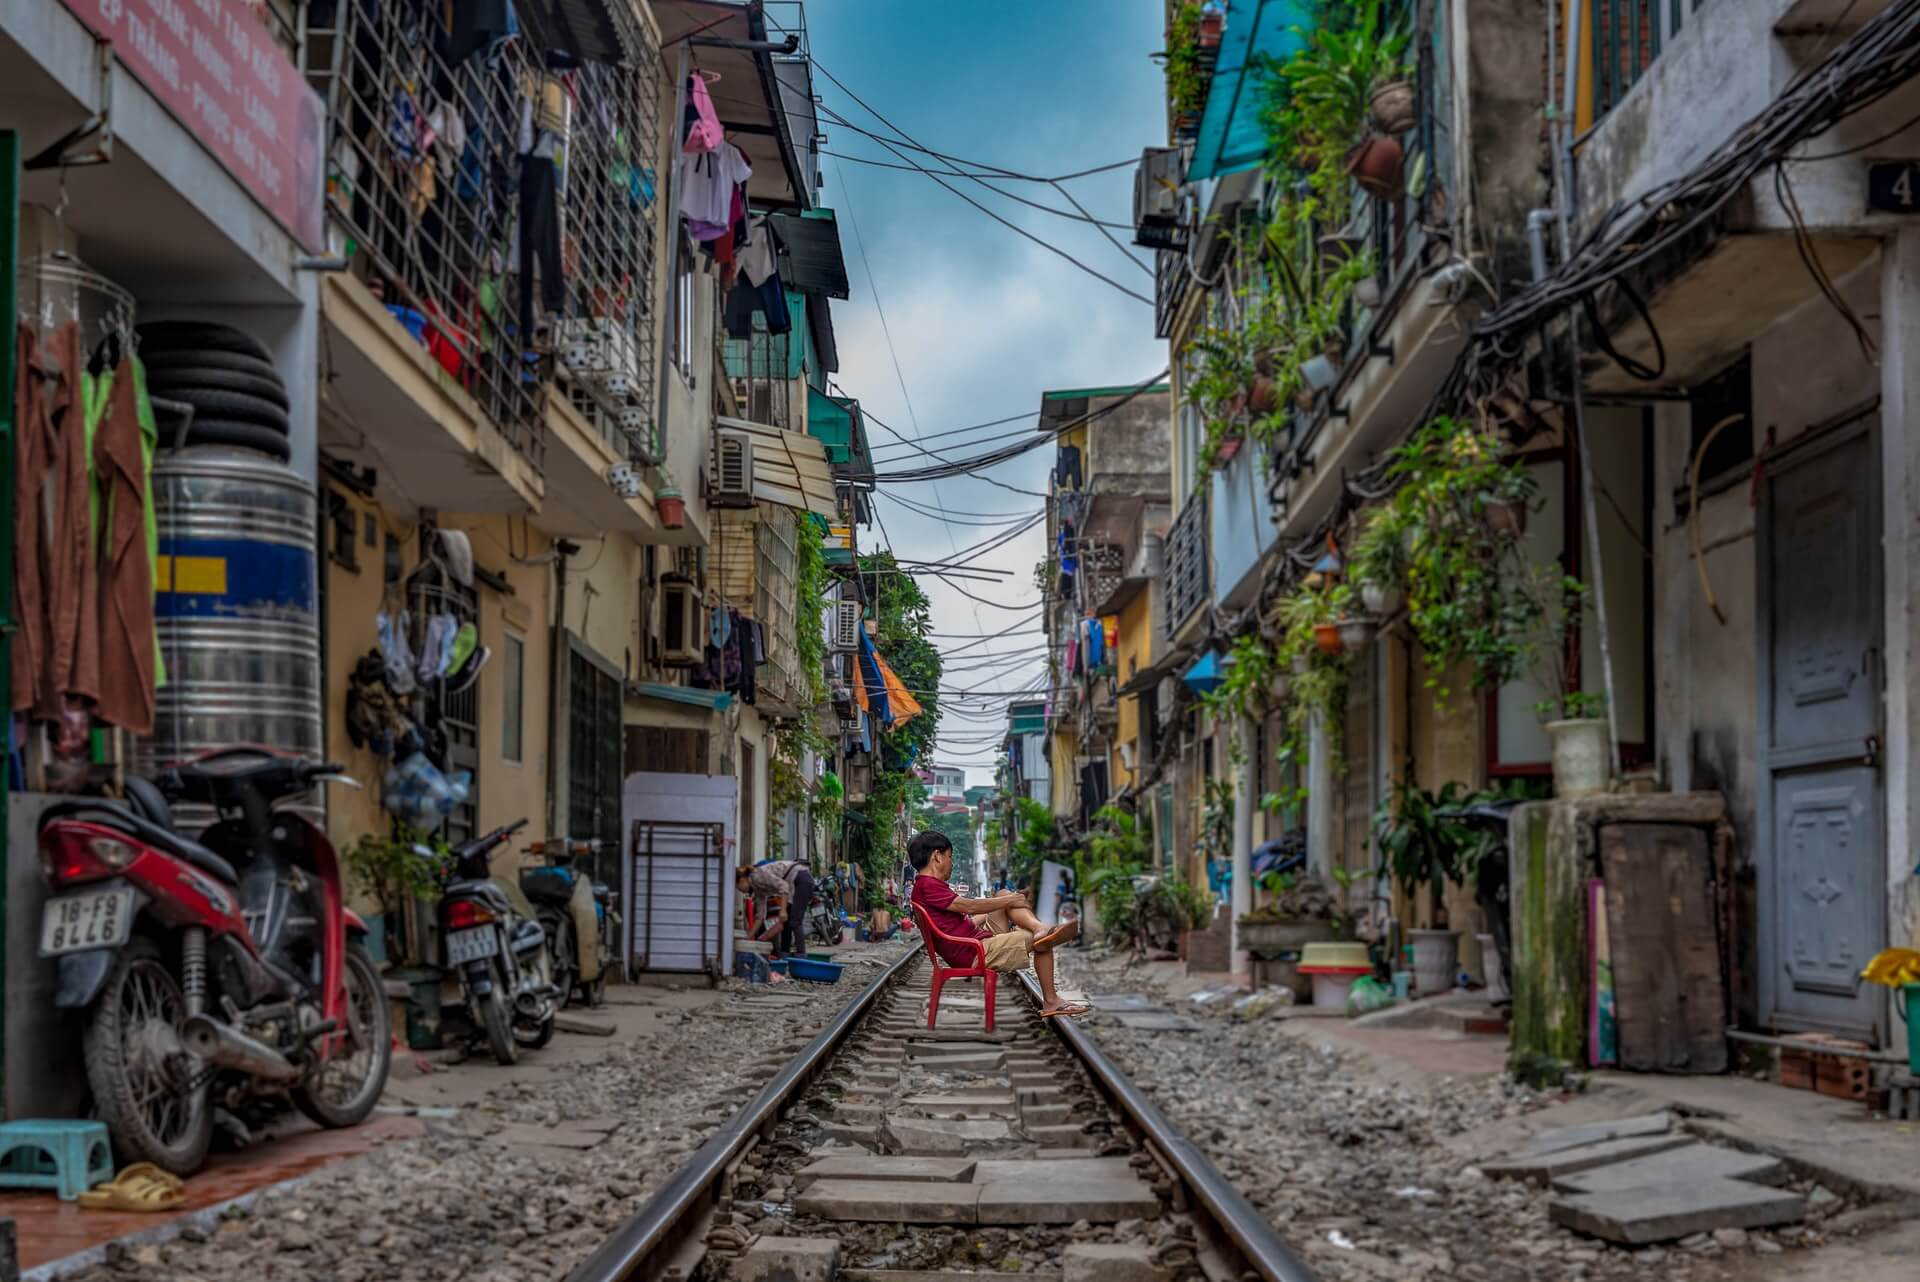 Boy sitting on the train tracks running through the Old Quarter in Hanoi